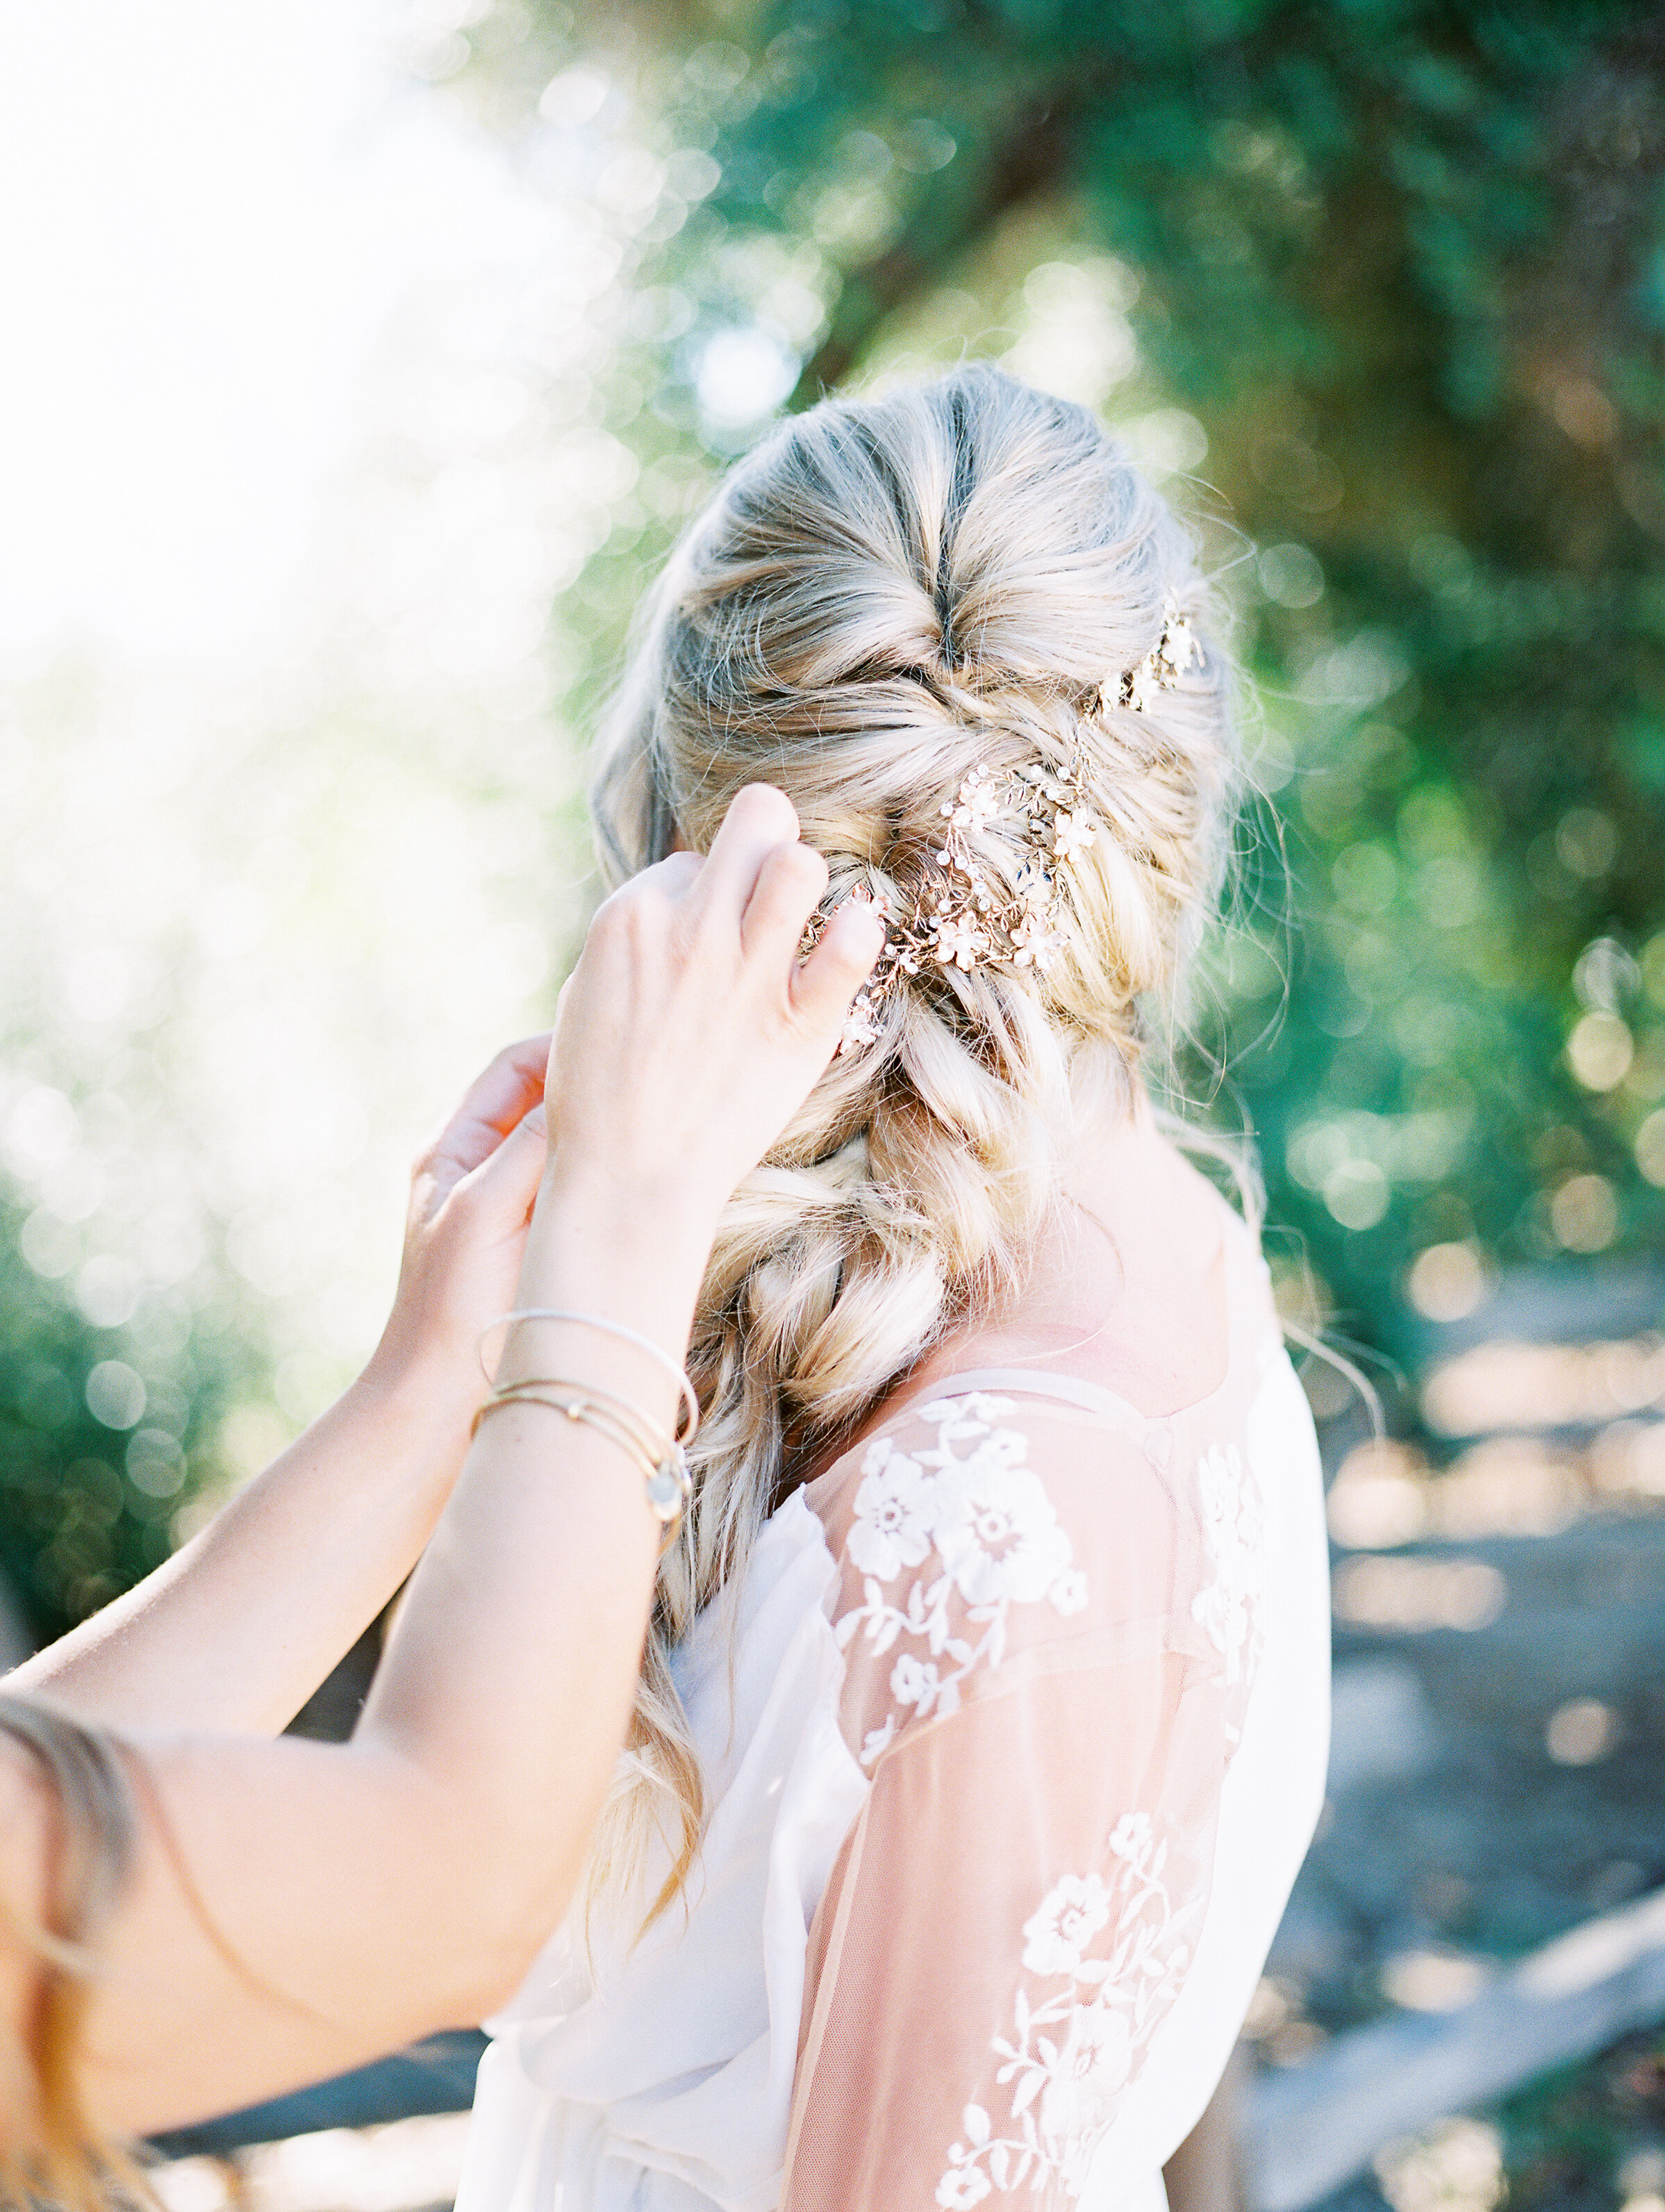 Join Our Team! - Are you a Hair stylist or makeup artist looking to showcase your skills in the world of weddings? Well you have come to the right place because we are hiring!I would love to get to know more about you. Please fill out the questionnaire below for the opportunity of becoming a part of the AT2B Team!I cannot wait to chat with you!xx Savanna